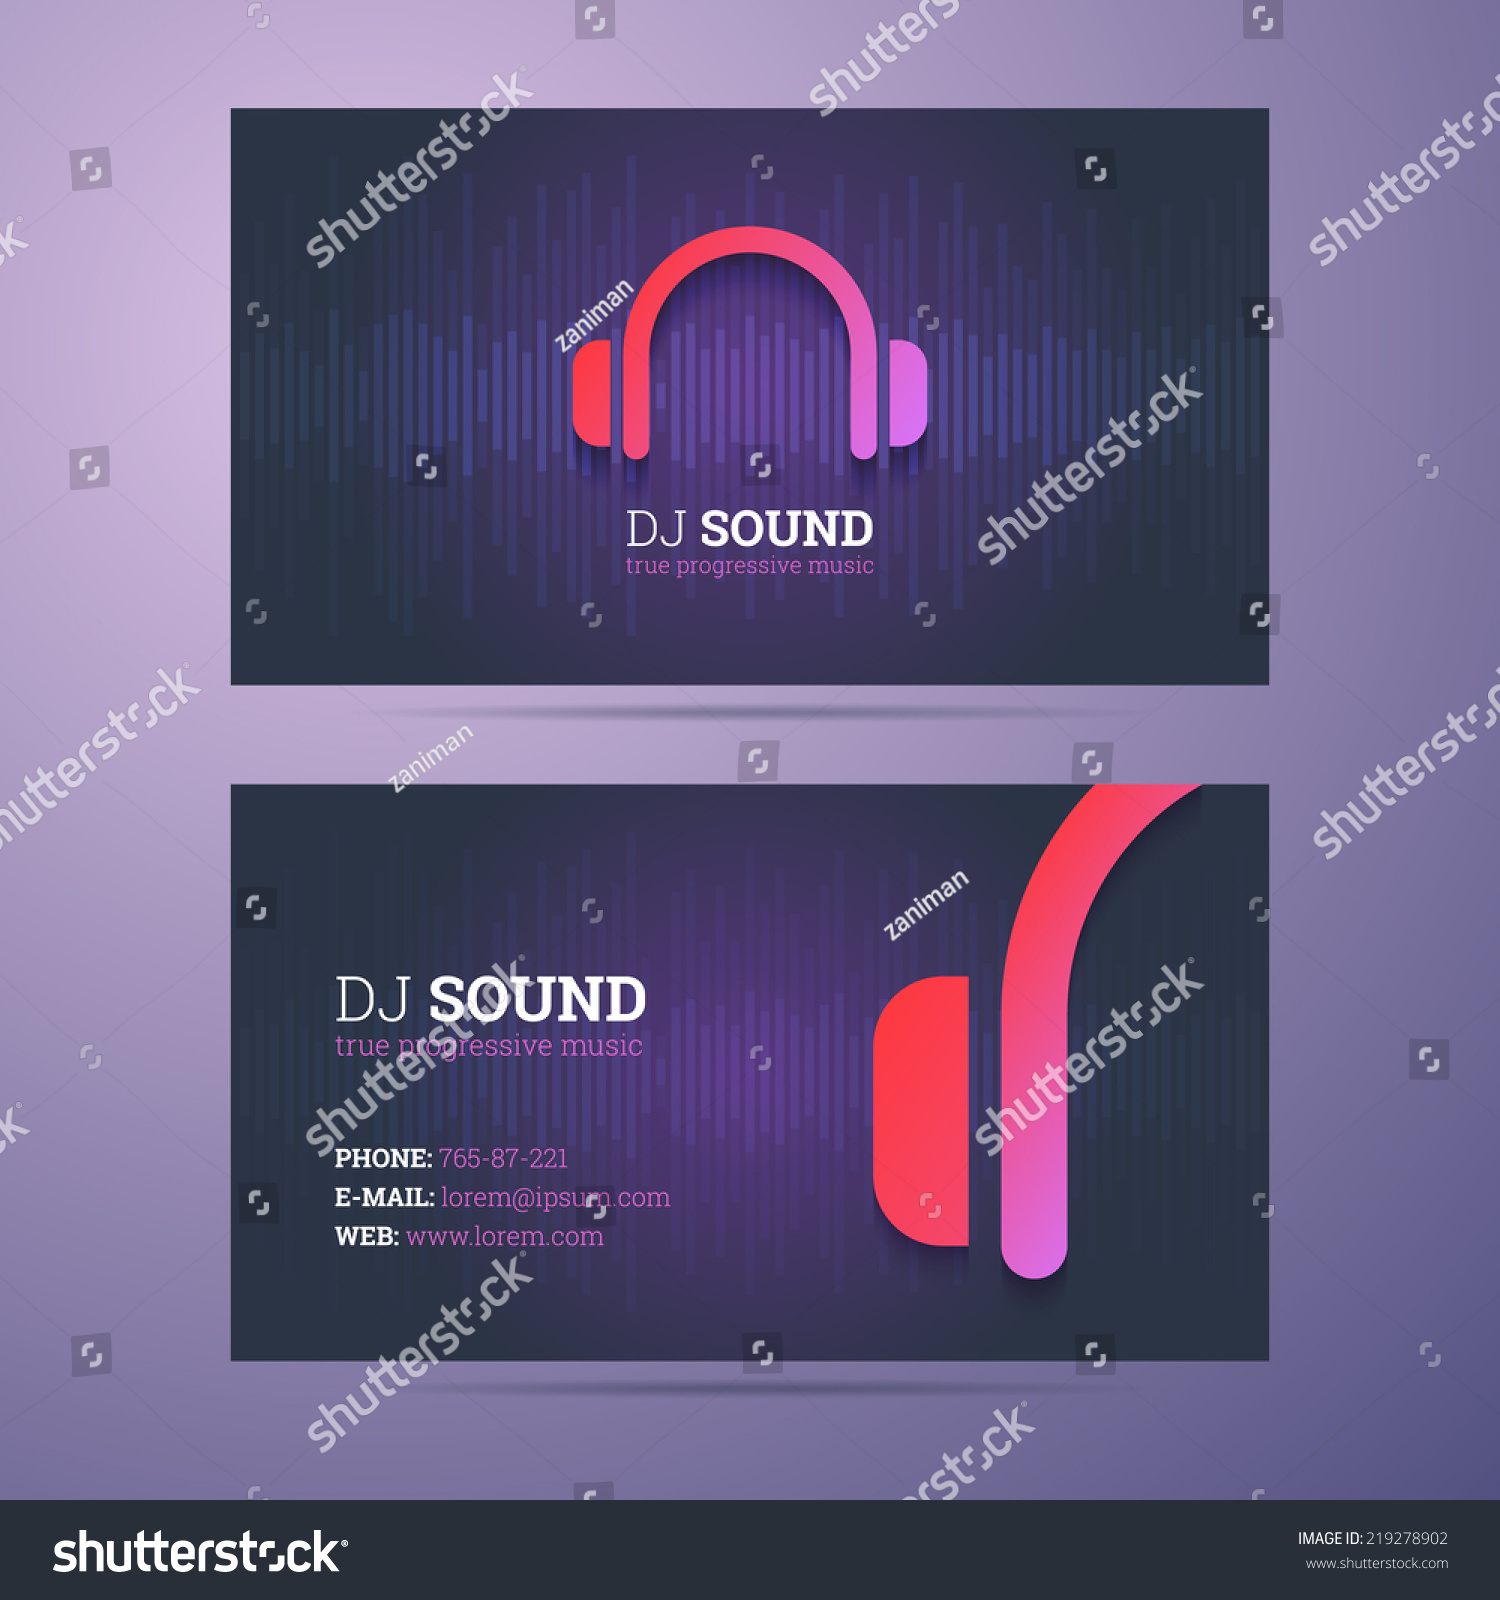 Business Card Template Dj Music Business Stock Vector - Music business card template